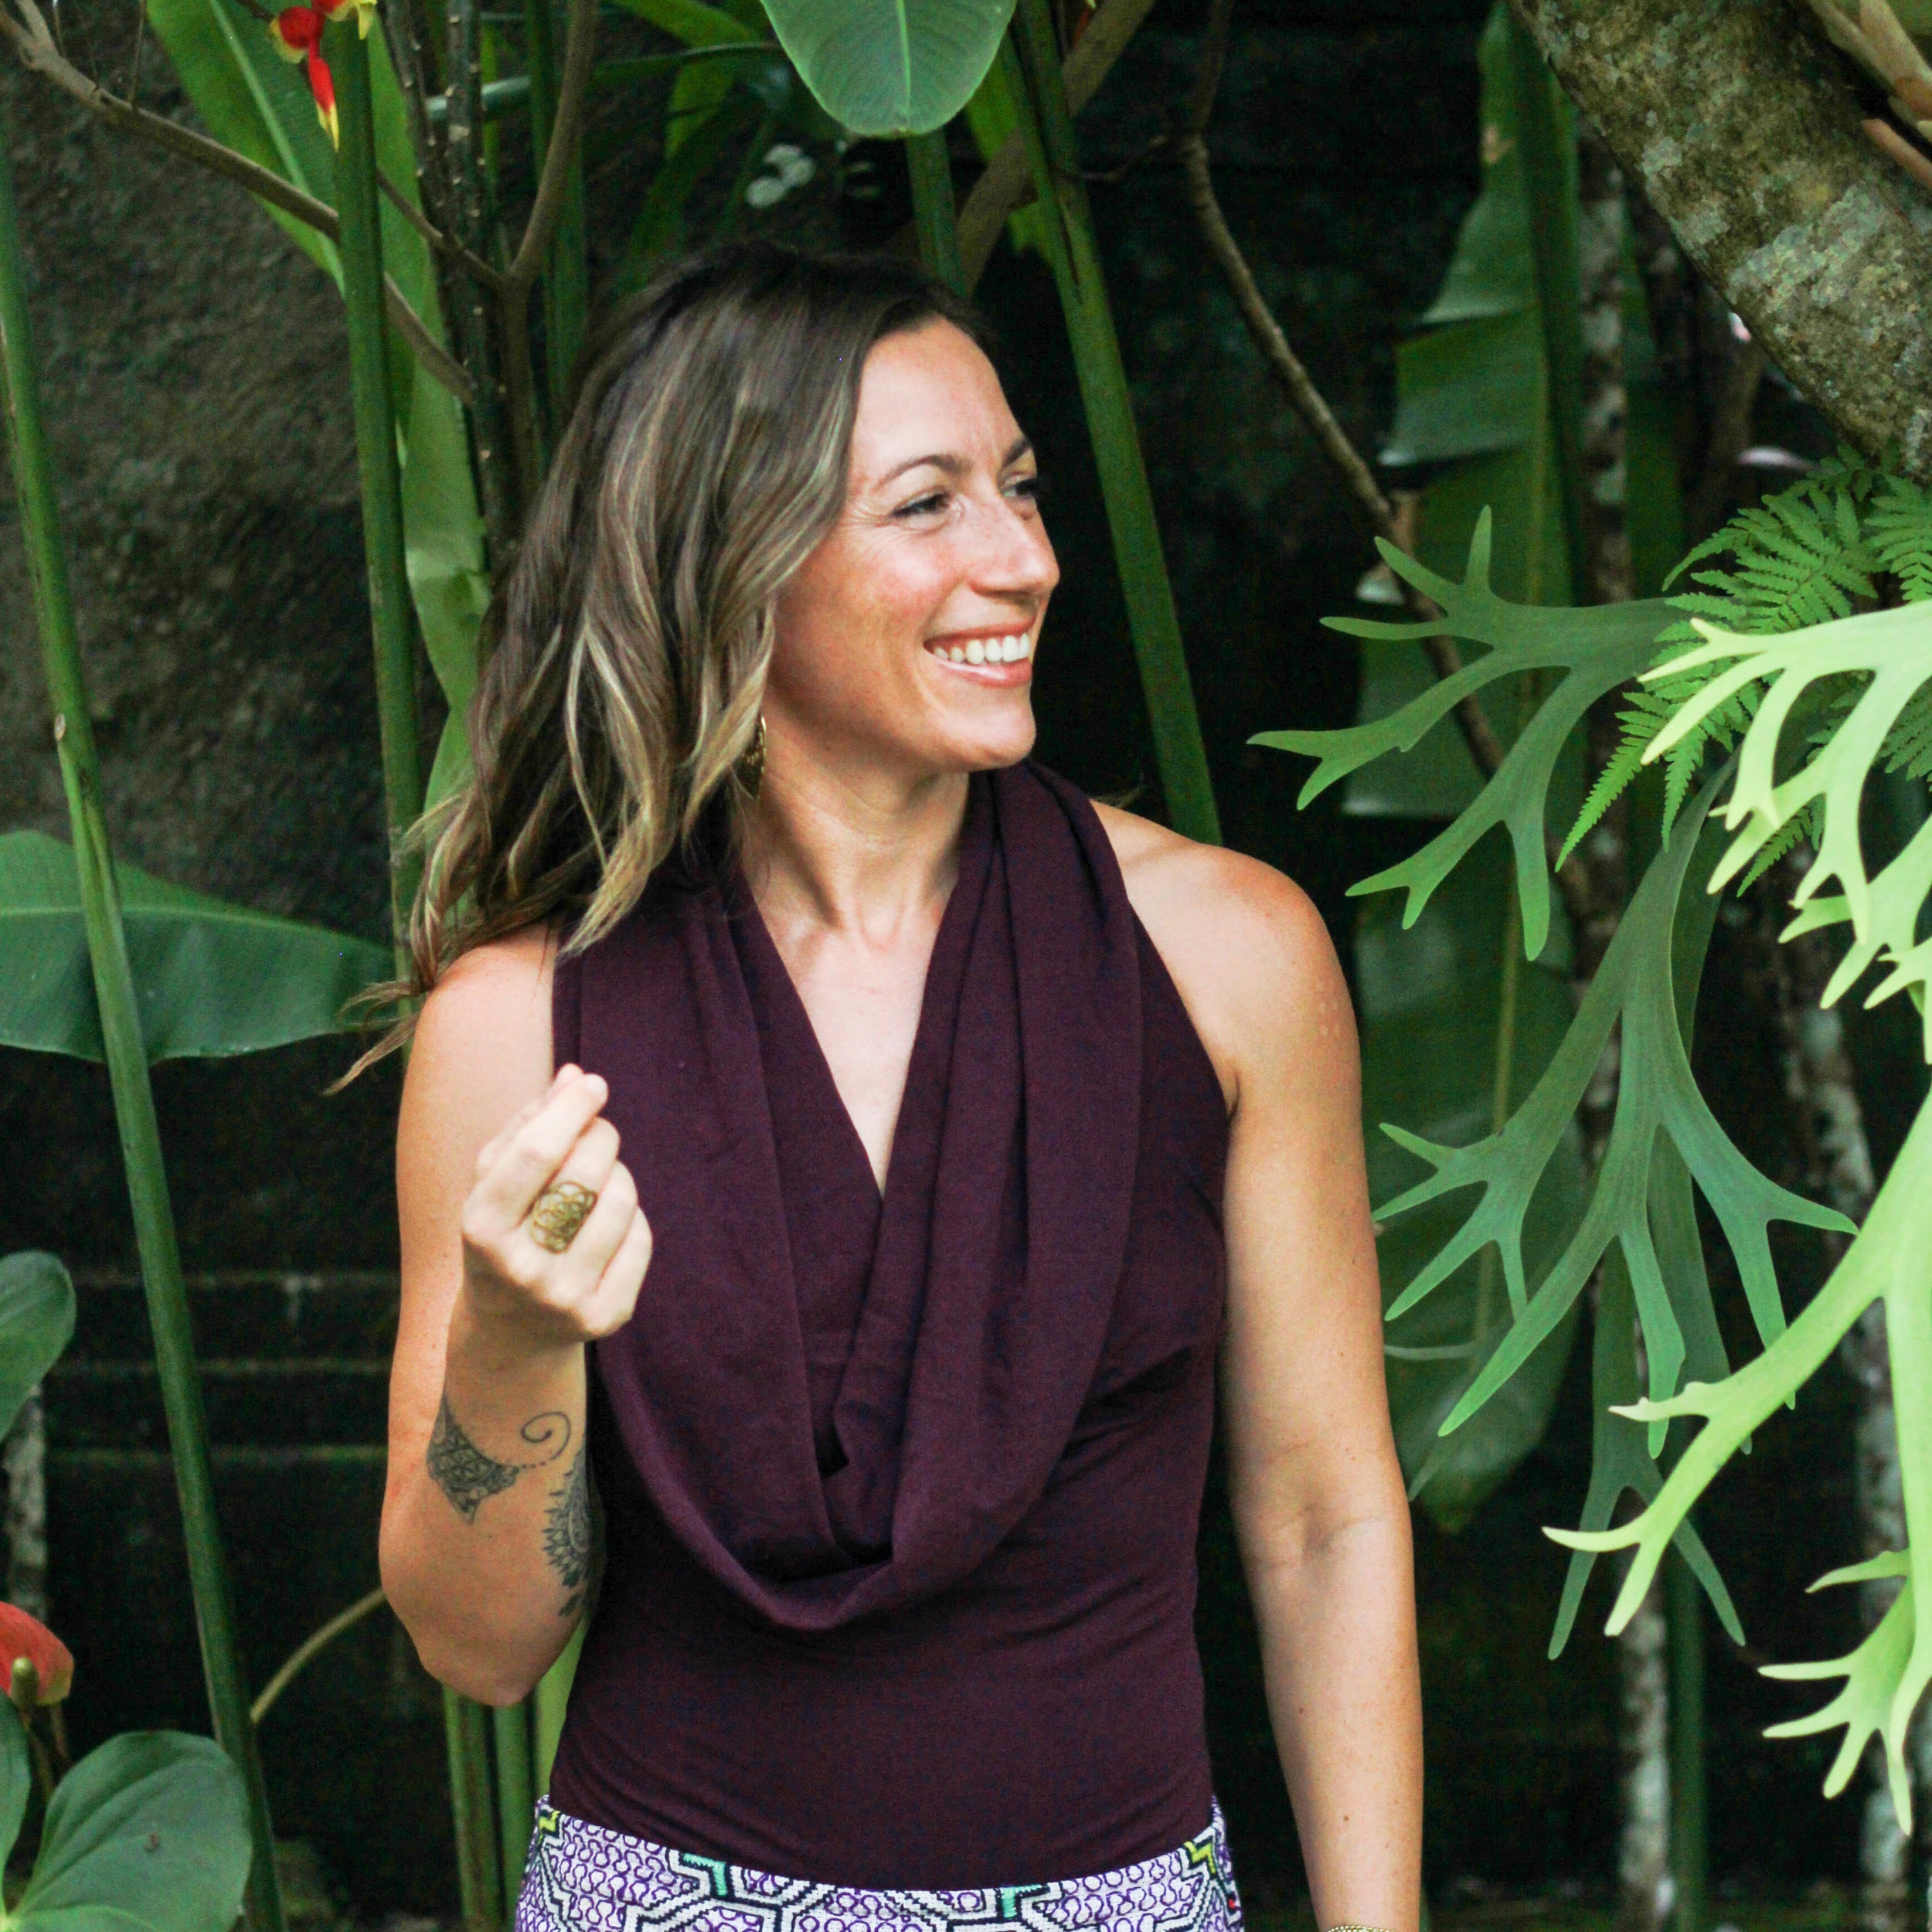 Jhennevièv - Jhennevièv catalyzes transformation. Creator and activator of everything that awakens the world, she is passionate about living life fully. Surfer, yogini, coach and entrepreneur, she uses the synergies of entrepreneurship and spirituality, the mystical and the practical, the ancient and the modern, and the art and the science to create bridges between approaches. She likes to reconnect people to a wider range of possibilities in their movement, breathing, lifestyle and creations.She has been trained and has taught alongside renowned teachers such as Shiva Rea, Dr. Judith Kravitz, Dr. Peter Levine and Dr. Goiz Duran, and has received transmissions from many Elders. Founder of NAI'A, Jhennevièv continues to teach and share globally.www.naialife.com | @naia.life | @naialife